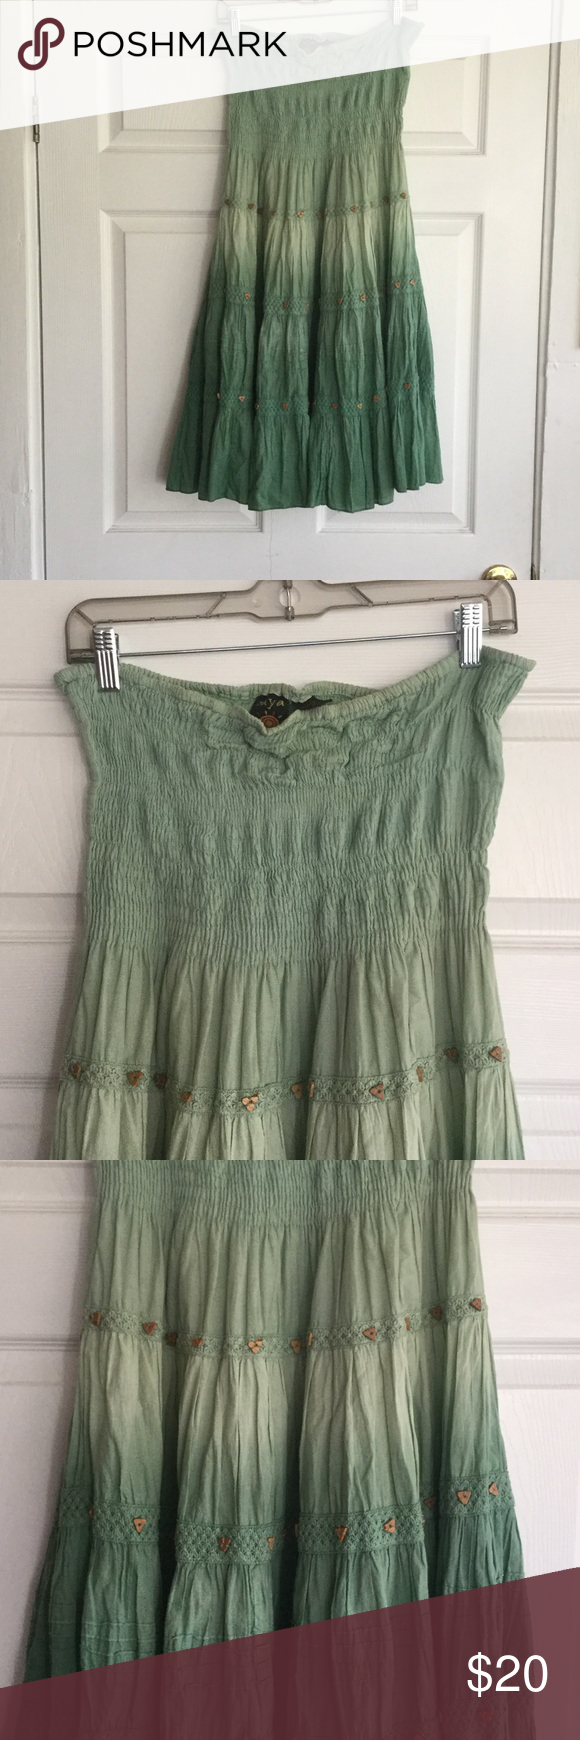 Raya Sun Cotton Stretchy Skirt Excellent condition. Very